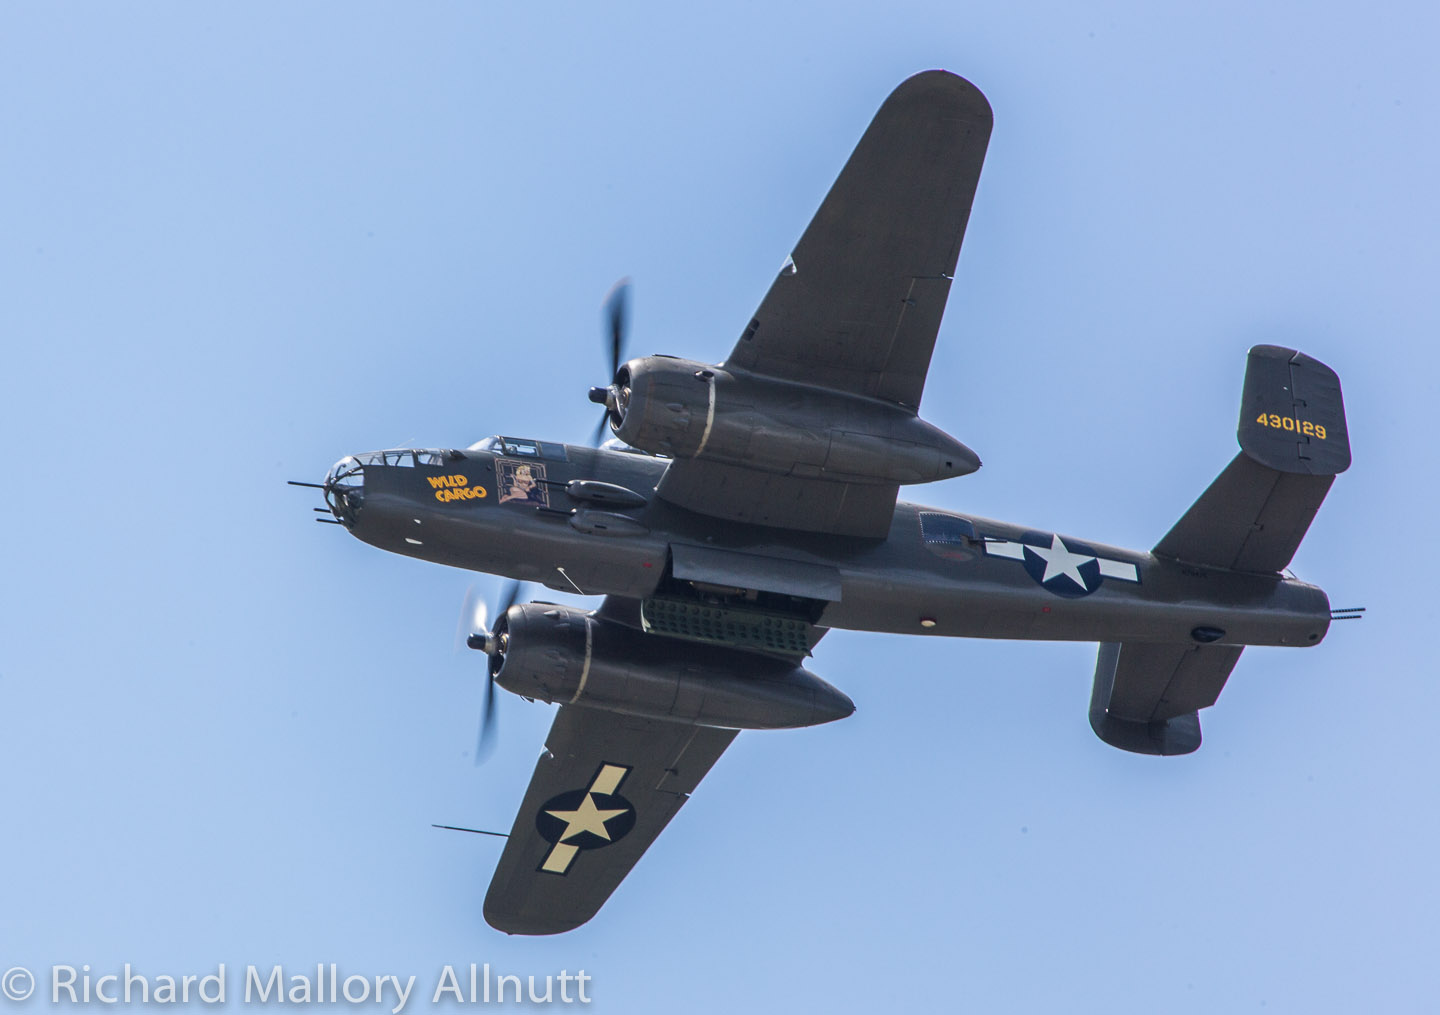 _C8A9992 - Richard Mallory Allnutt photo - Warbirds Over the Beach - Military Aviation Museum - Pungo, VA - May 17, 2014